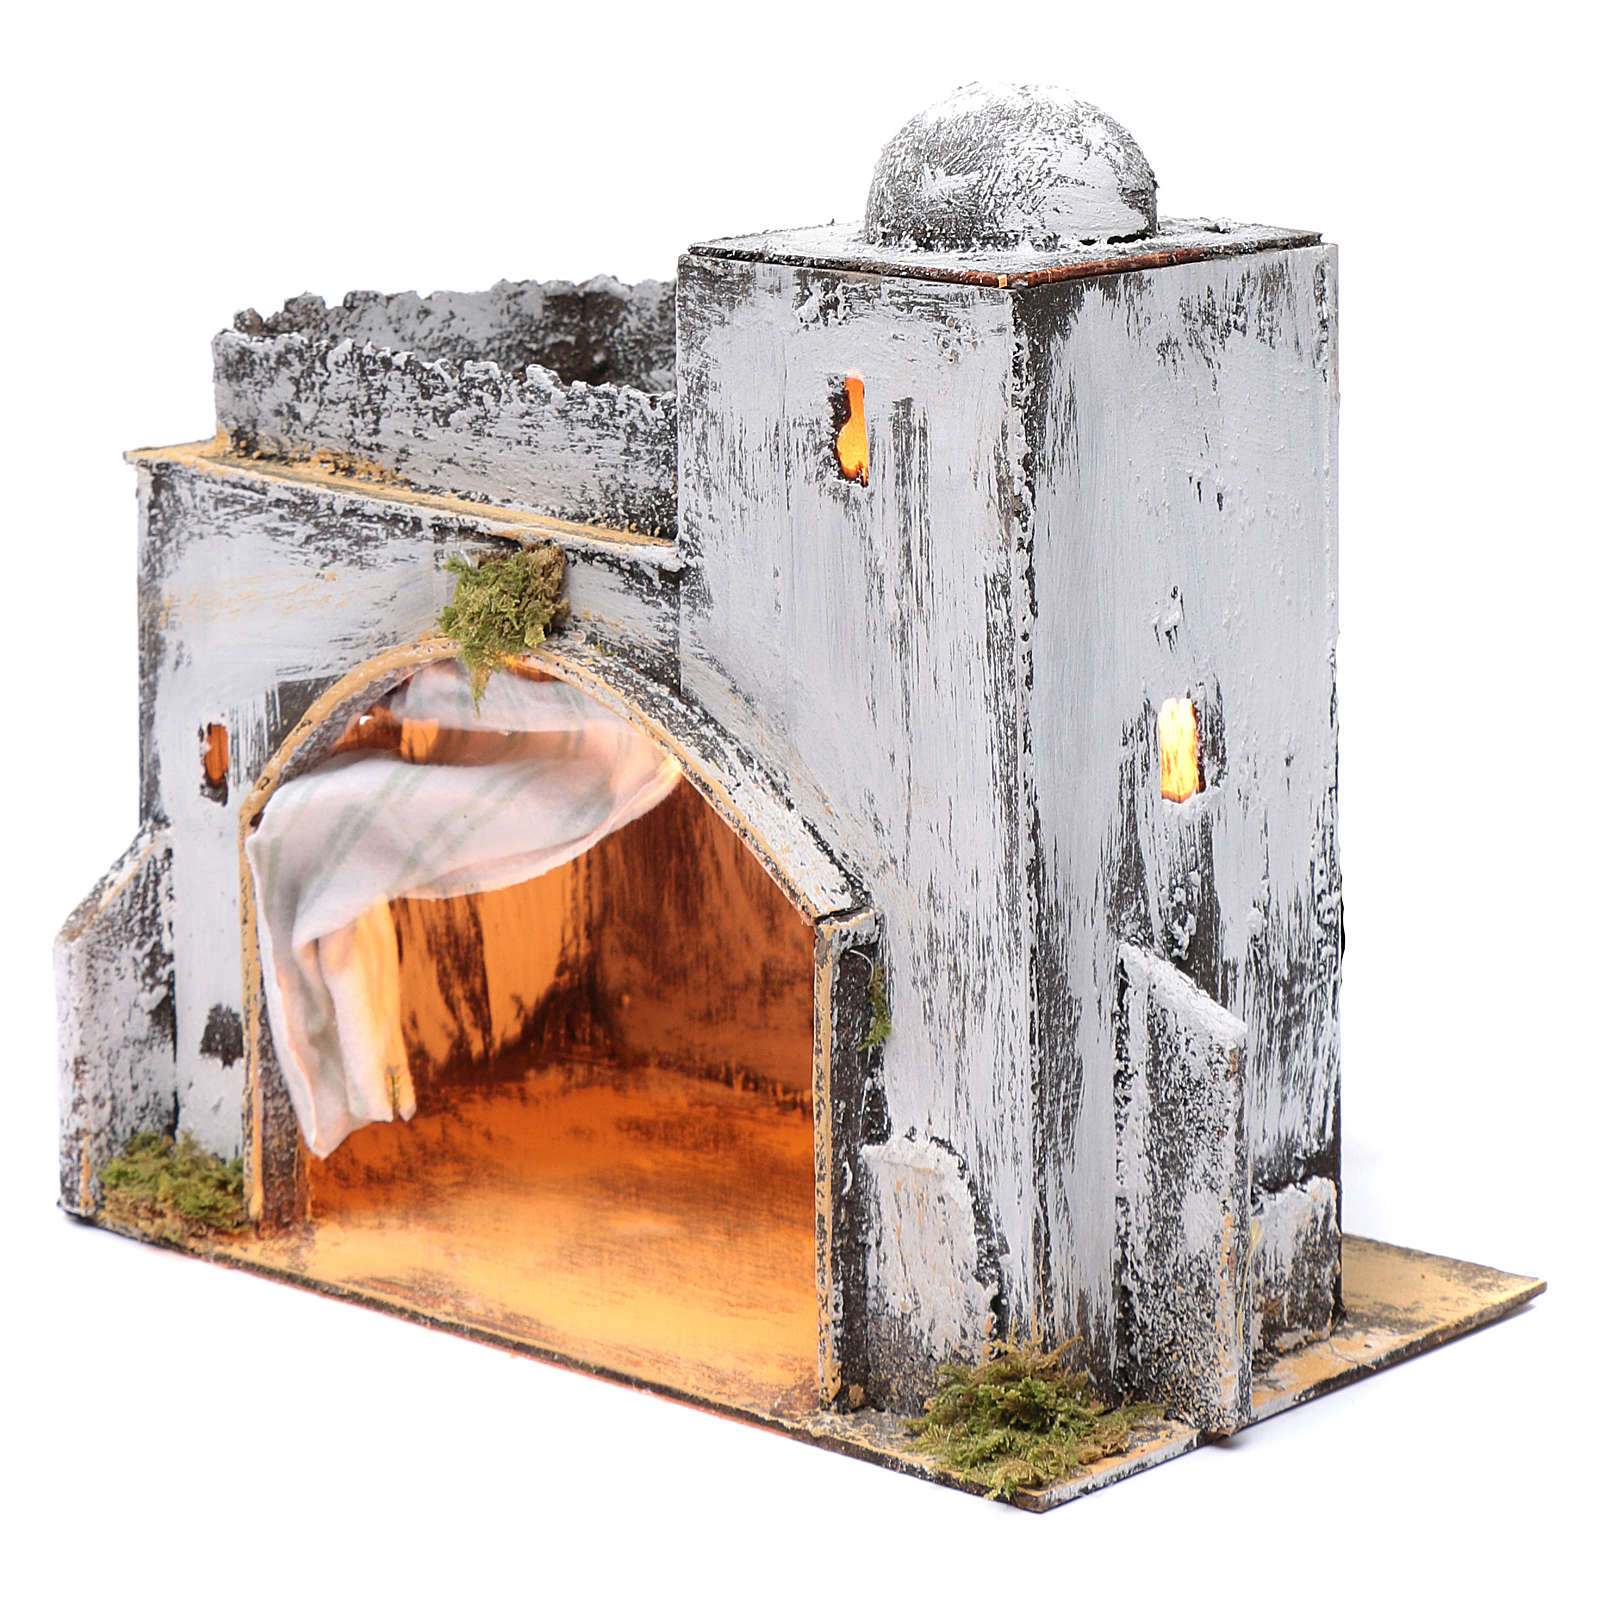 Neapolitan nativity scene setting Arabian hut with curtain  30x30x20 cm 4